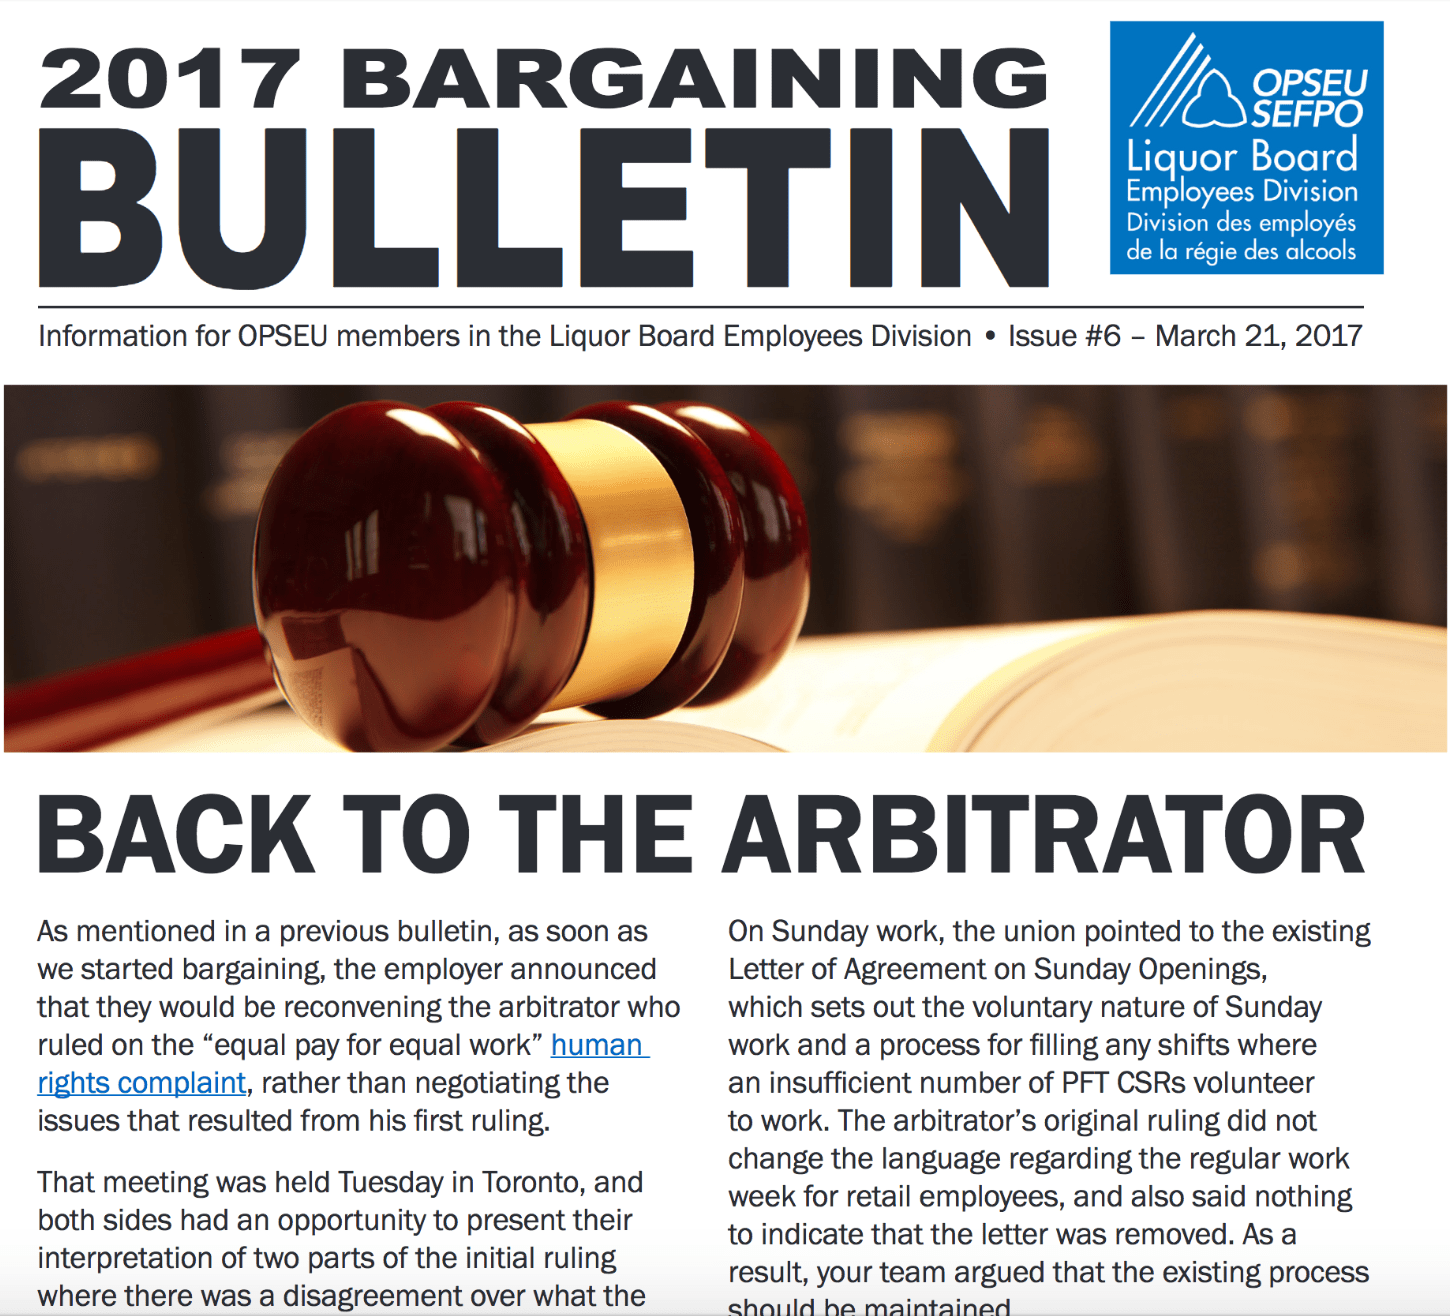 LBED 2017 Bargaining Bulletin, Issue 6, March 21, 2017